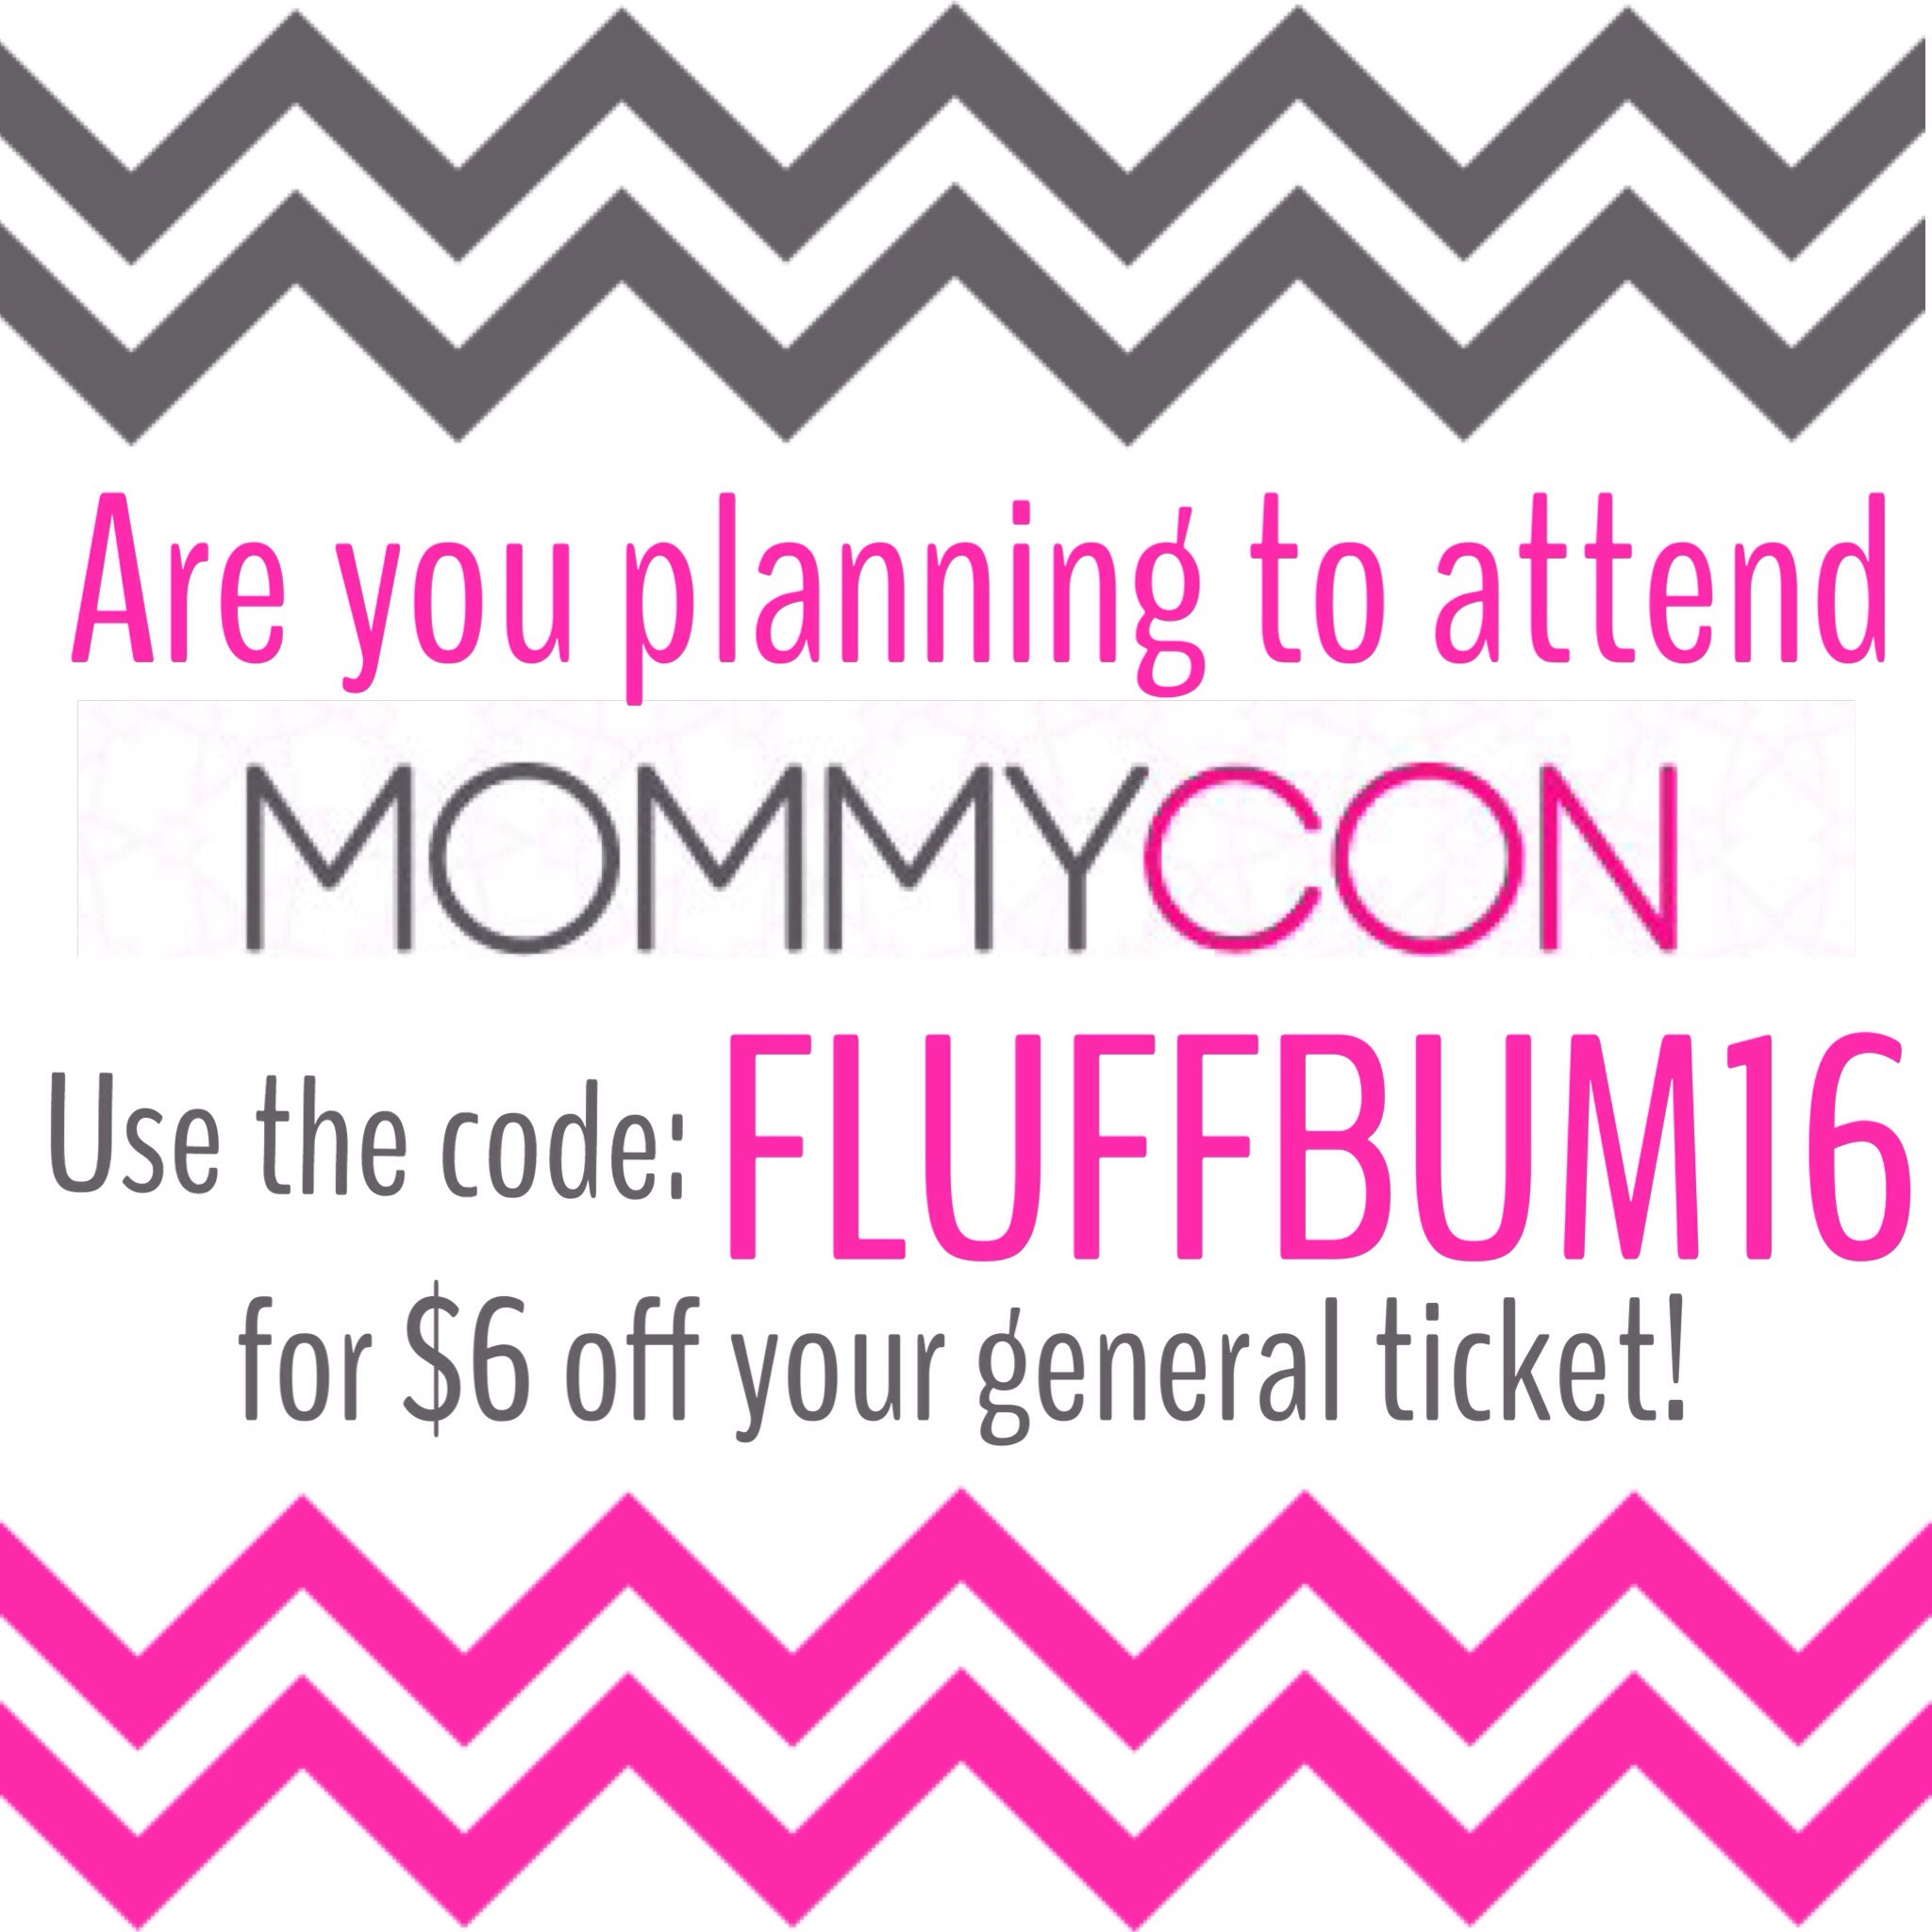 Awesome con coupon code